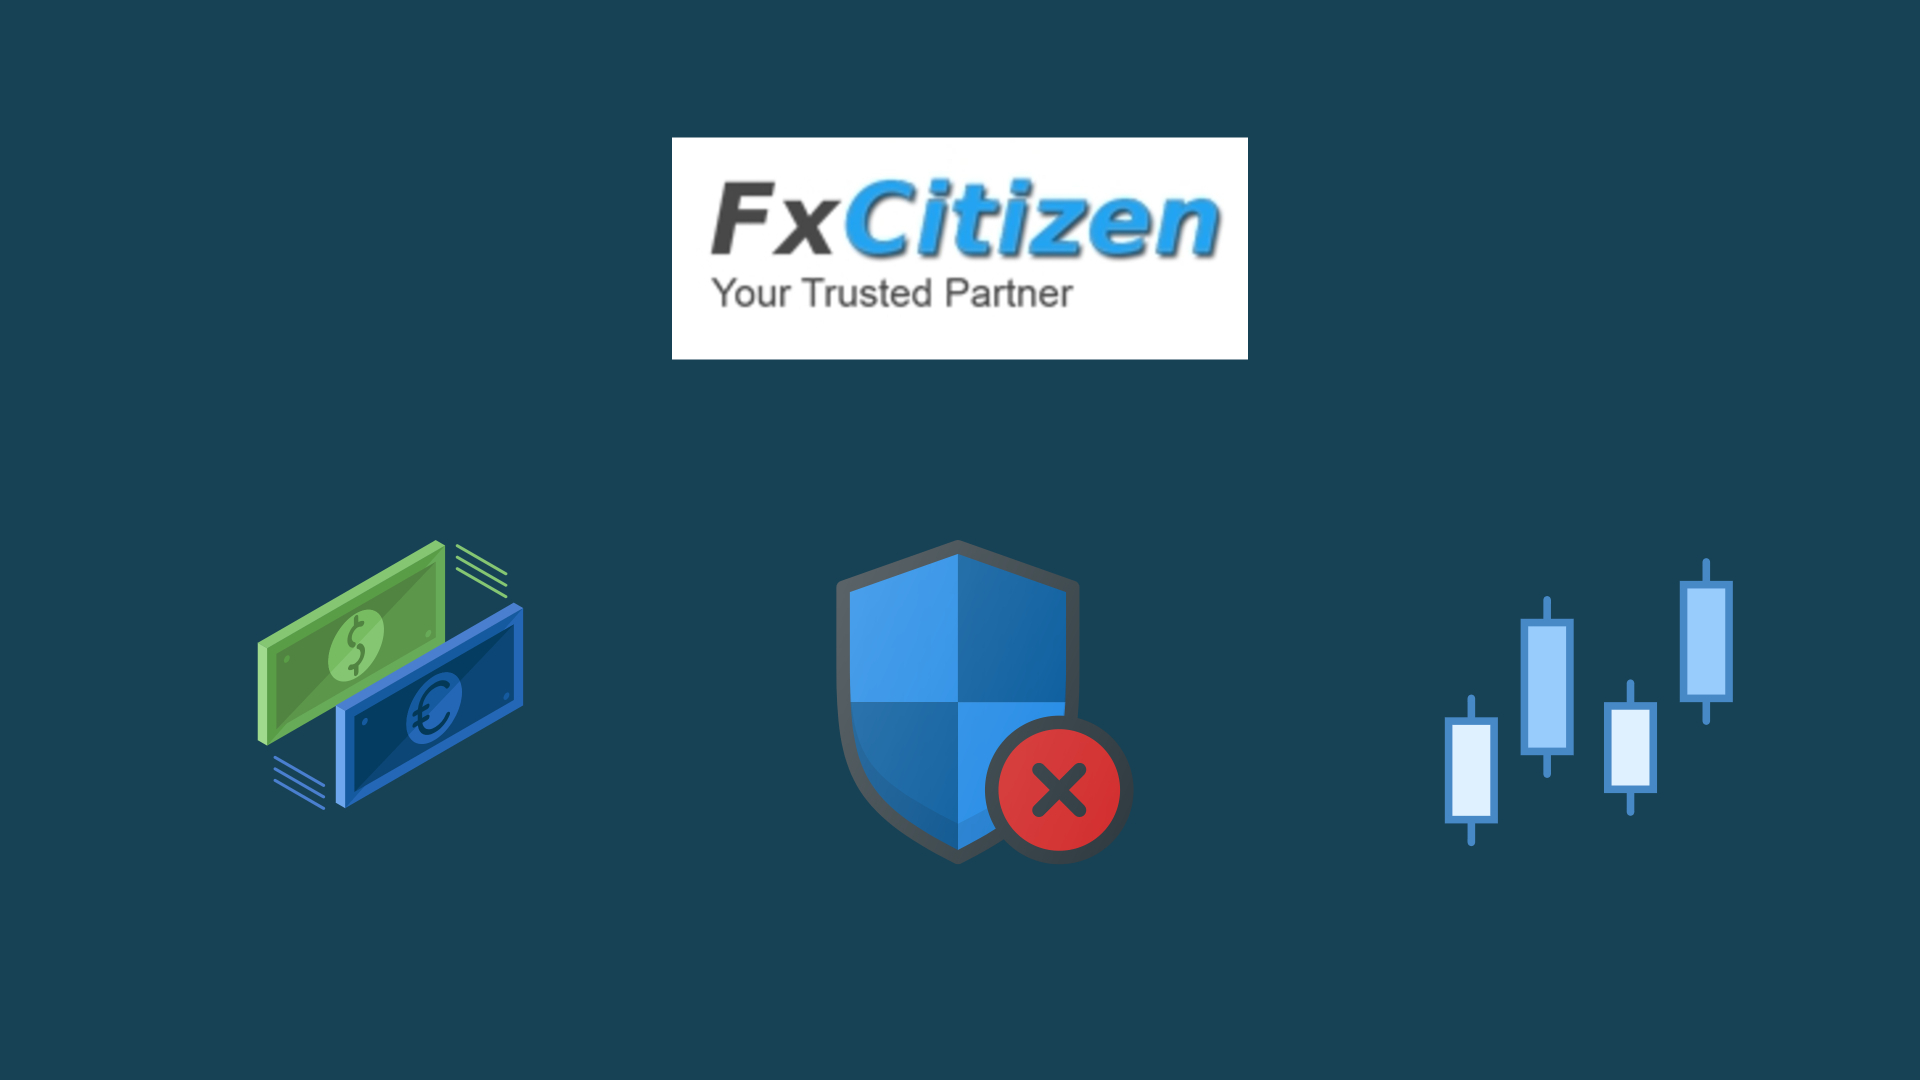 Is it safe to use FxCitizen?